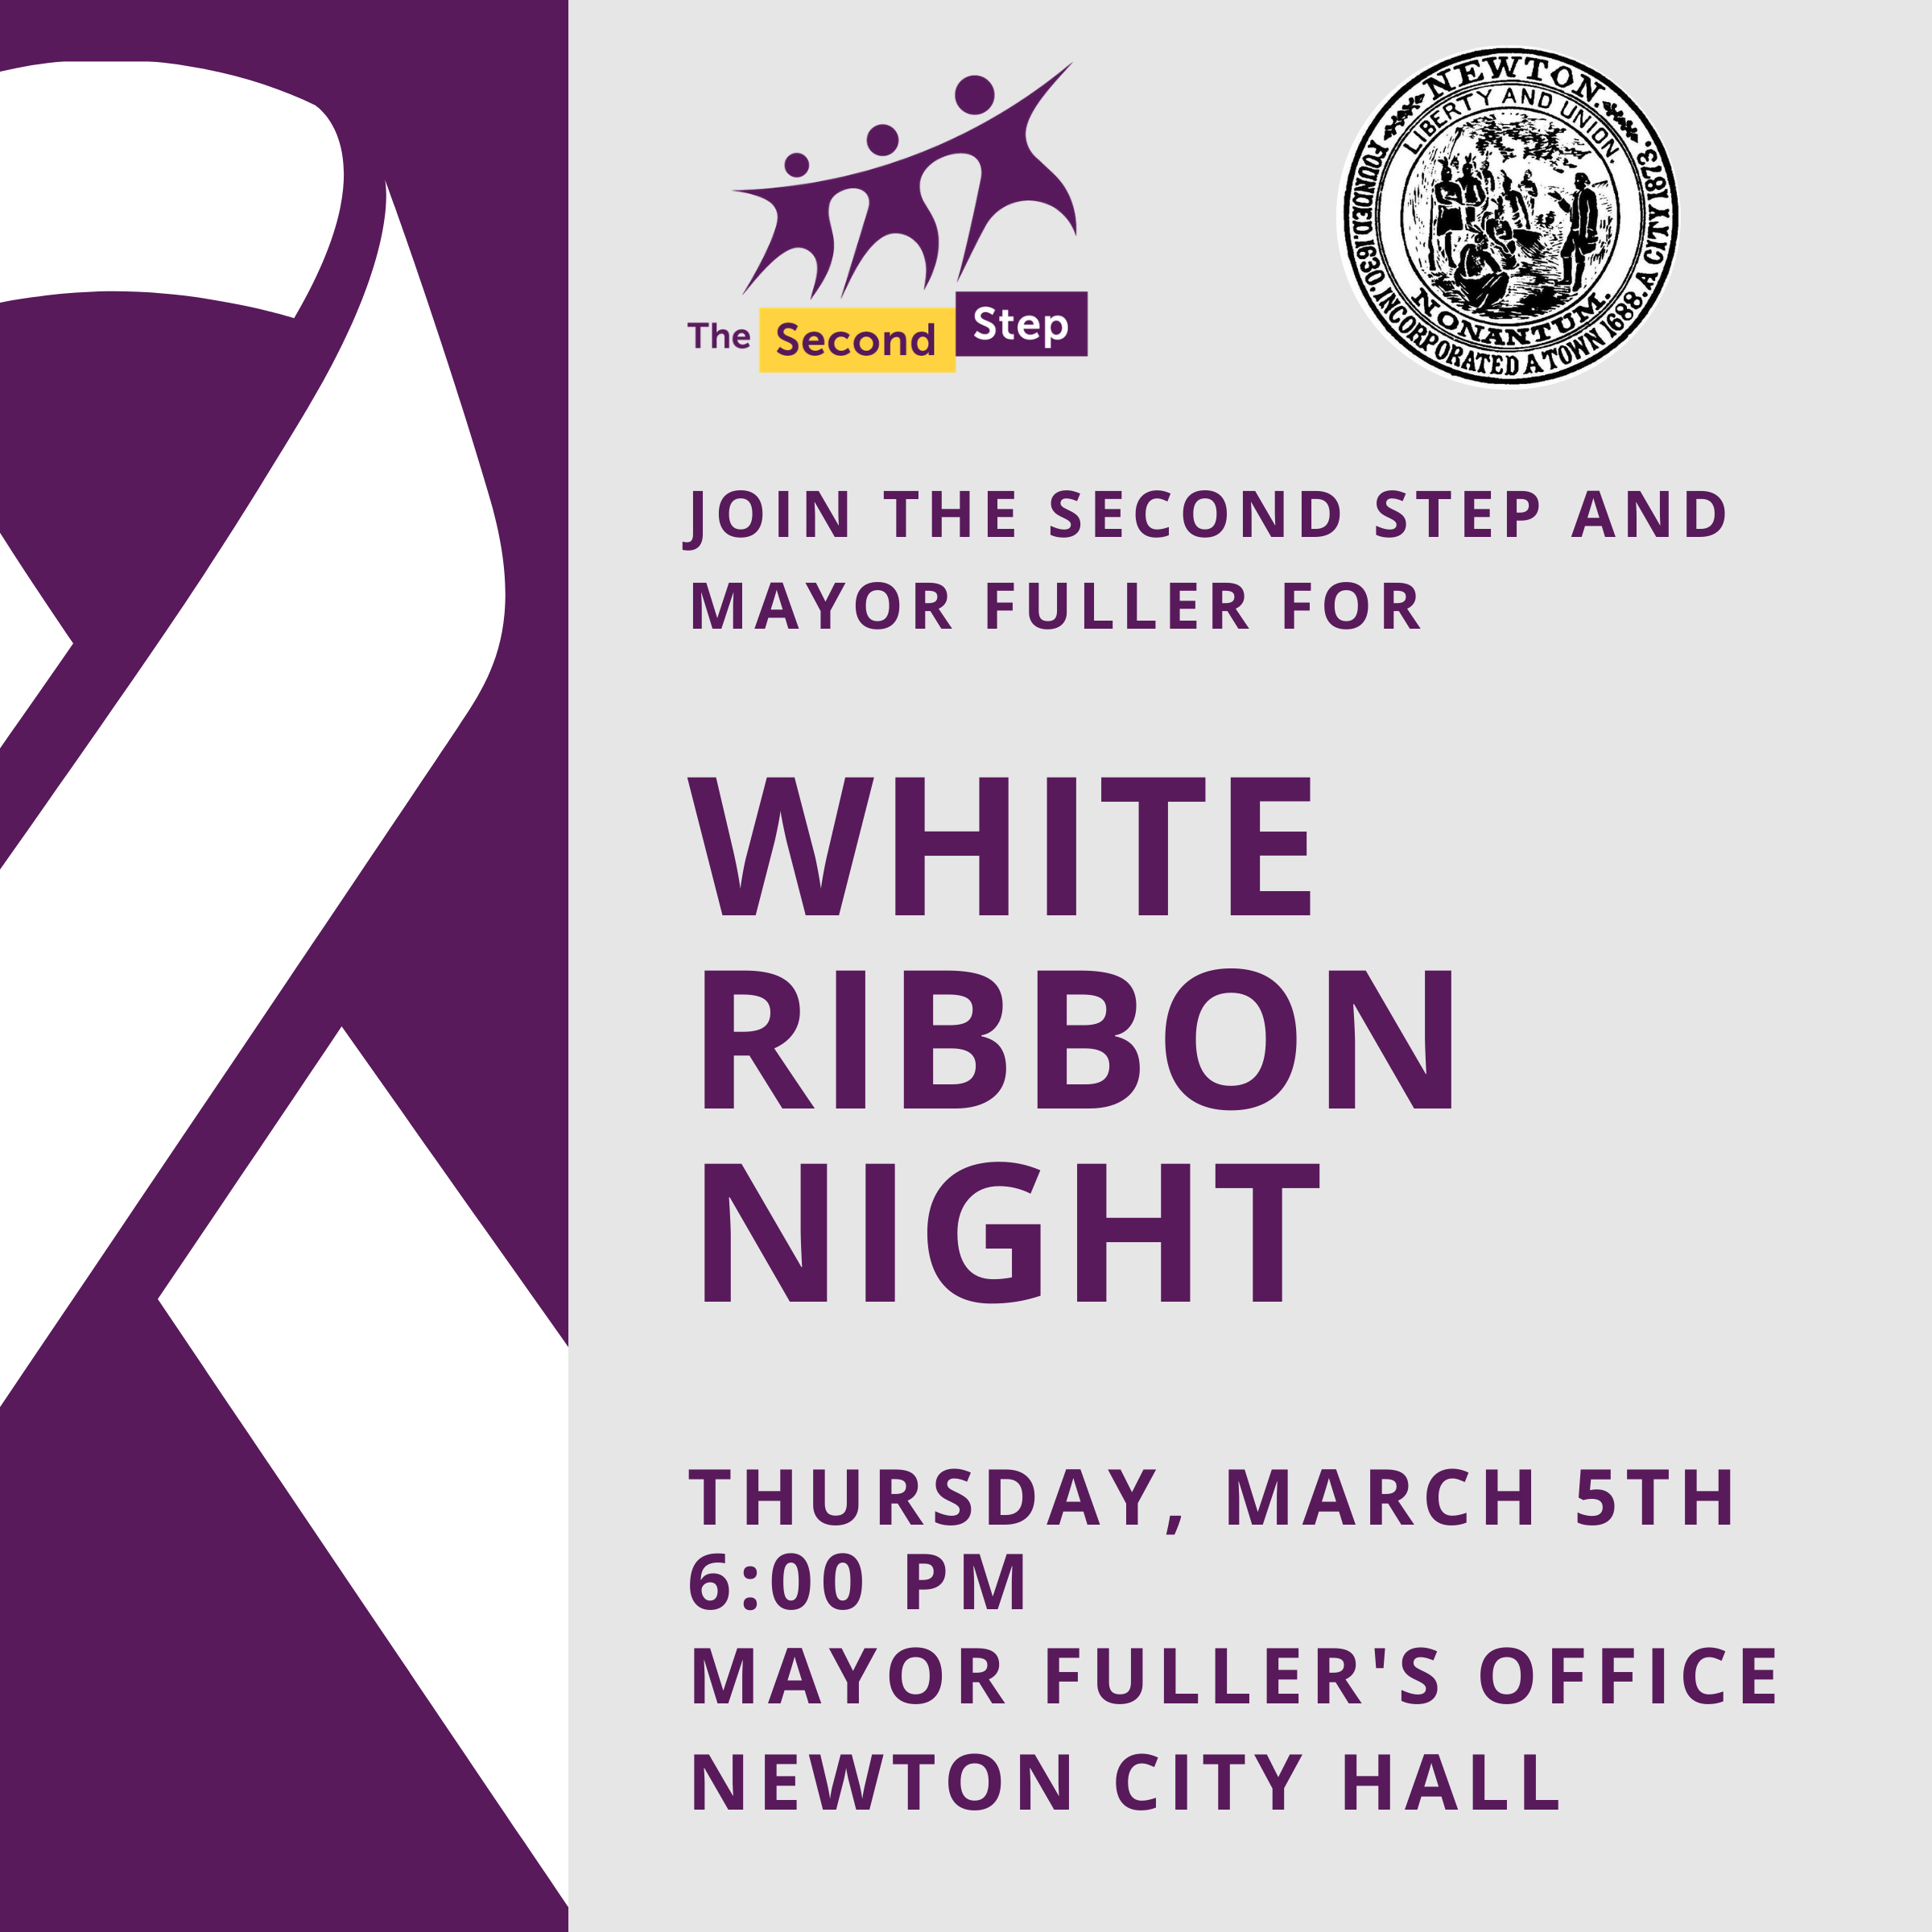 white-ribbon-night-2020-social-media